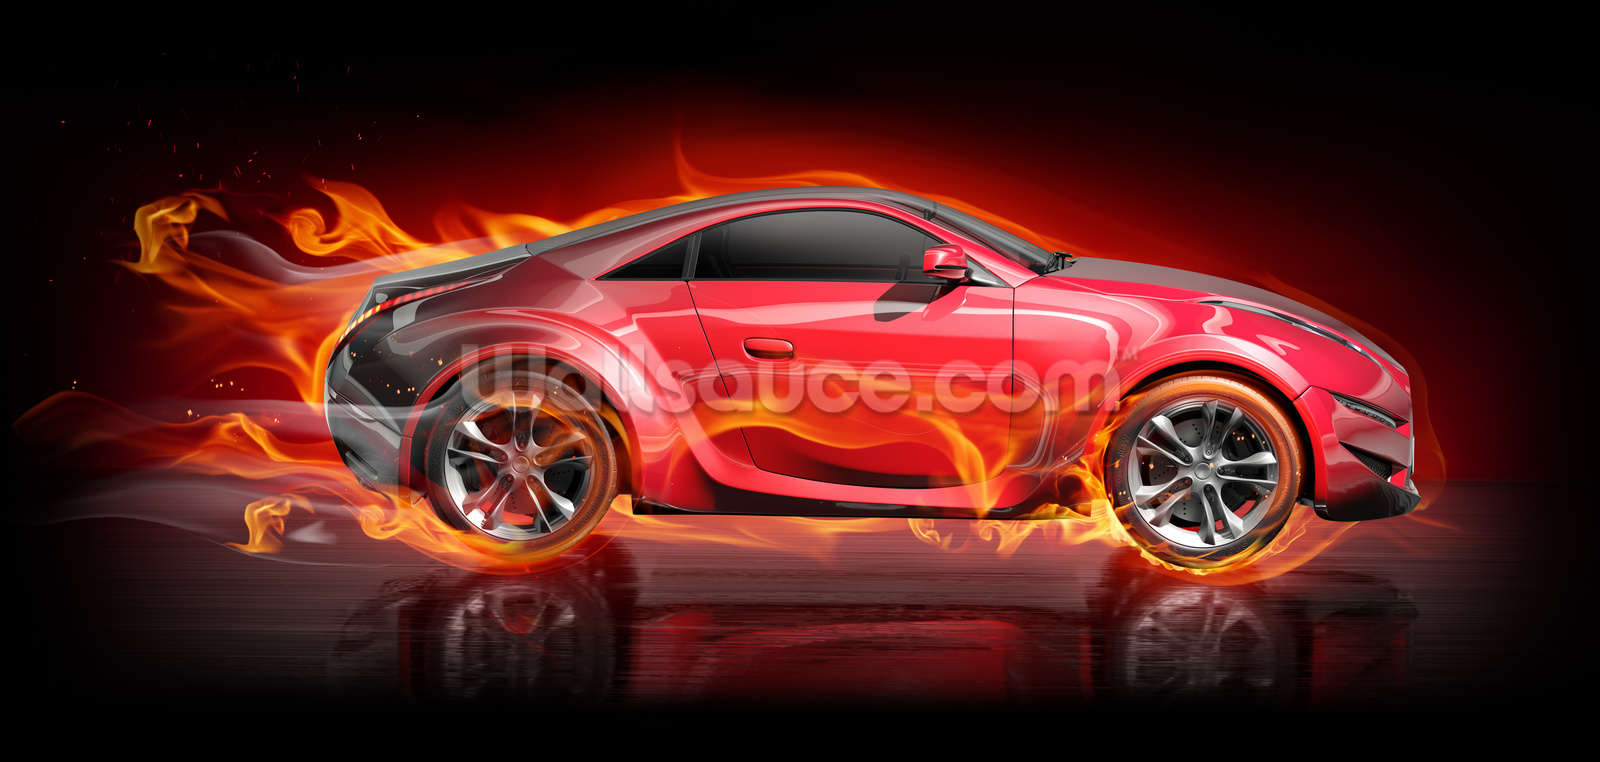 Burnout car wallpaper wall mural wallsauce usa for Car wallpaper mural